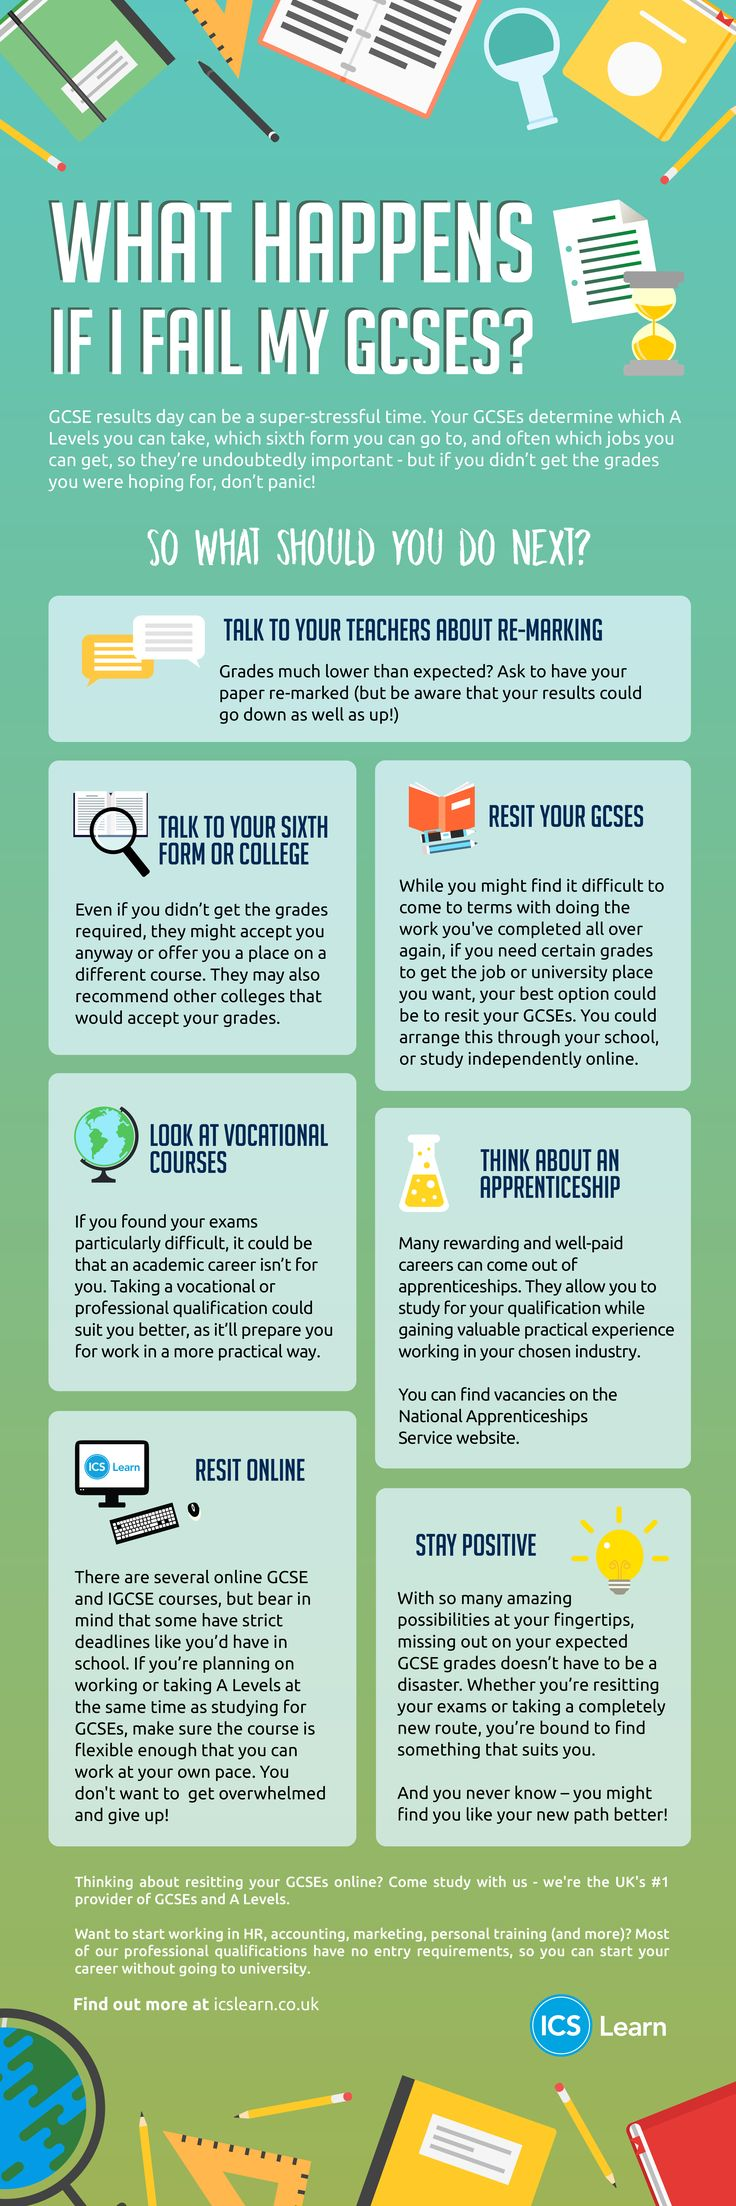 Best Tips For Your Job Search Images On   Job Search